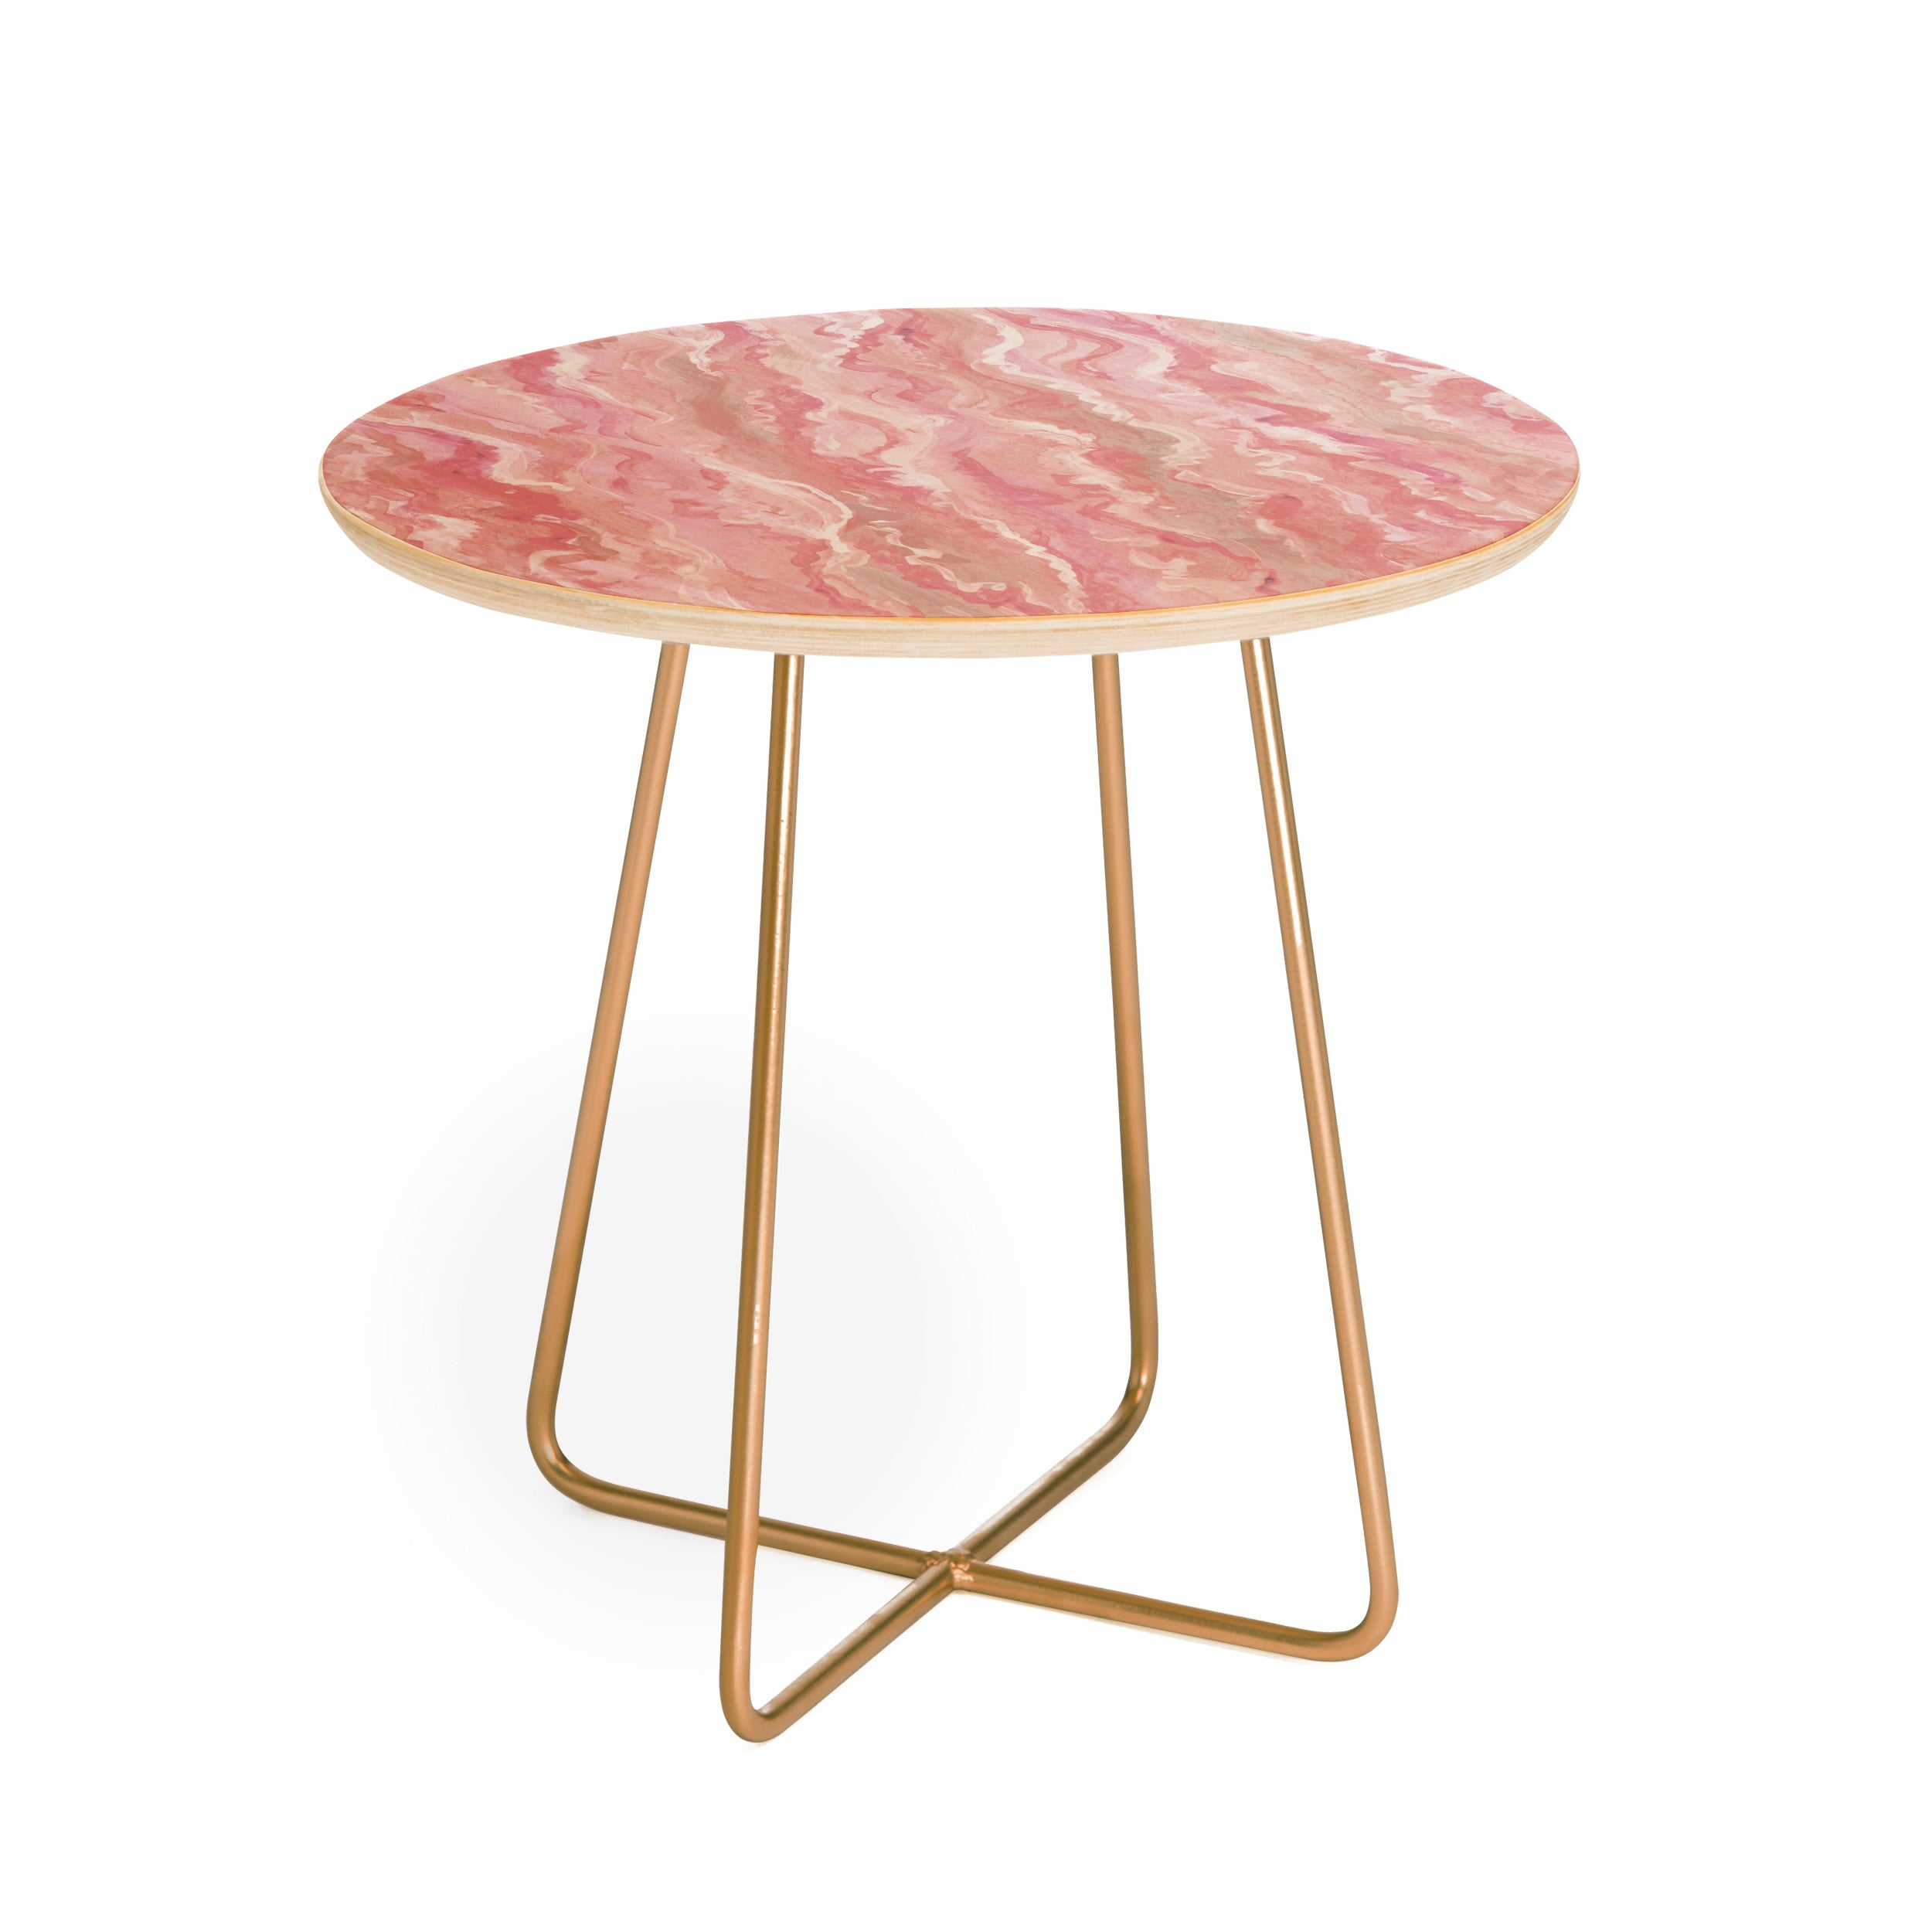 Lisa Argyropoulos Soft Blush Melt Round Side Table